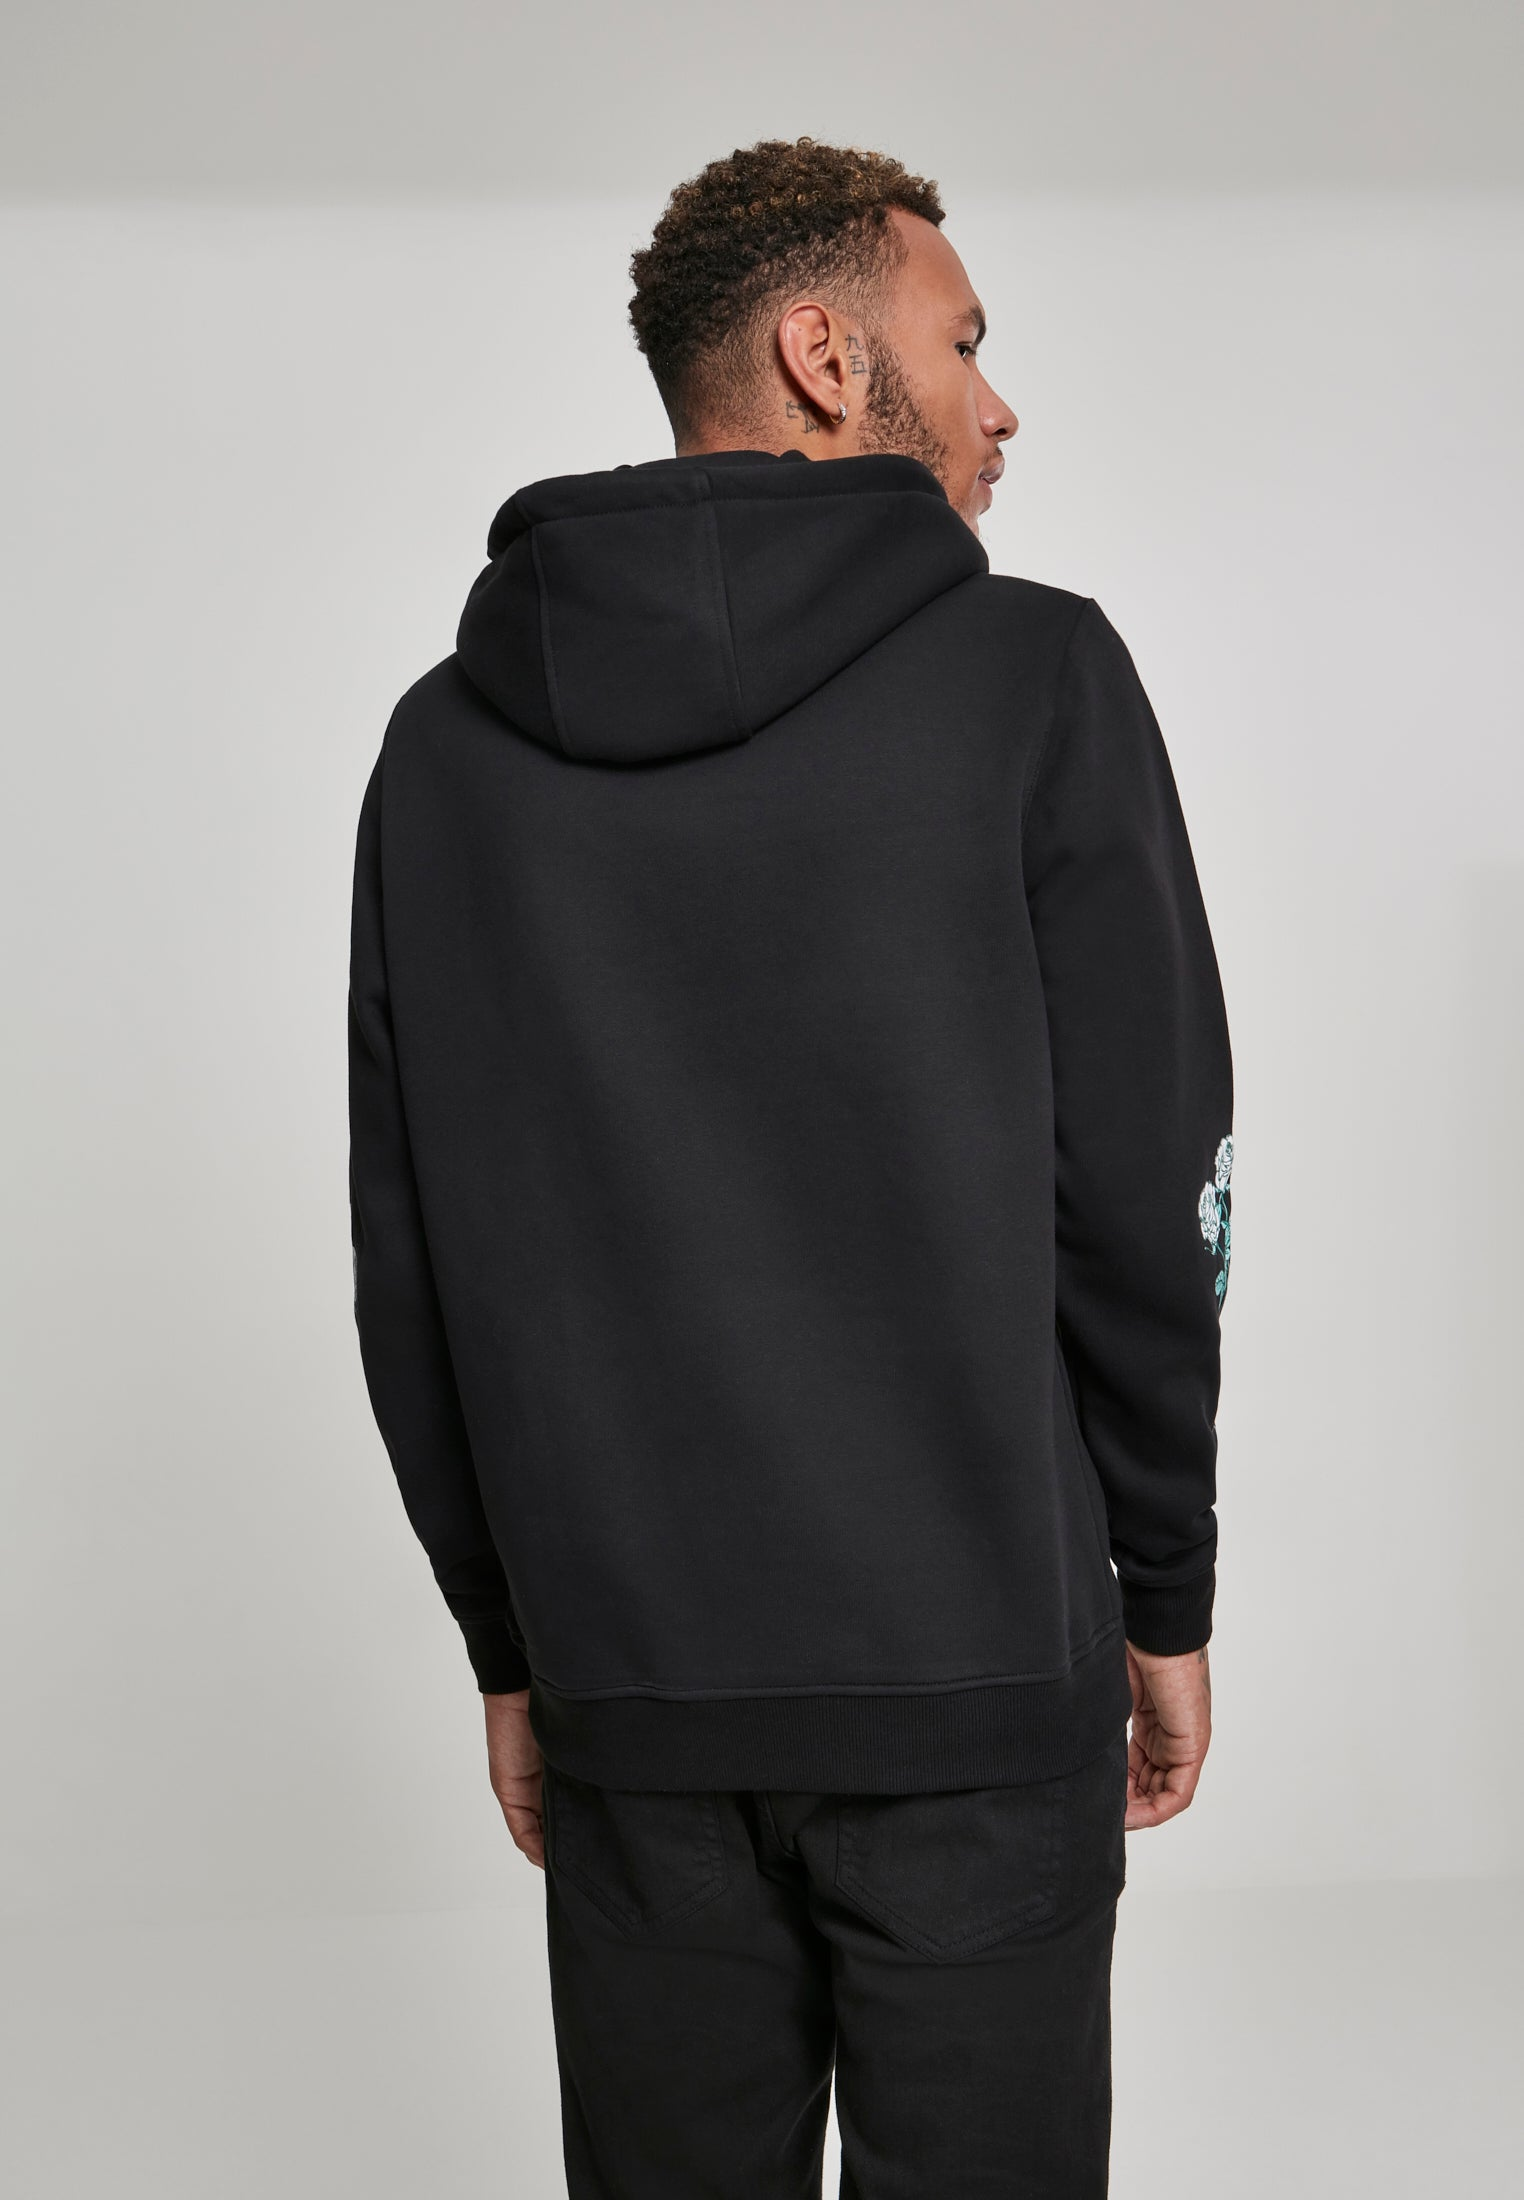 Rose Fake Love Hoody